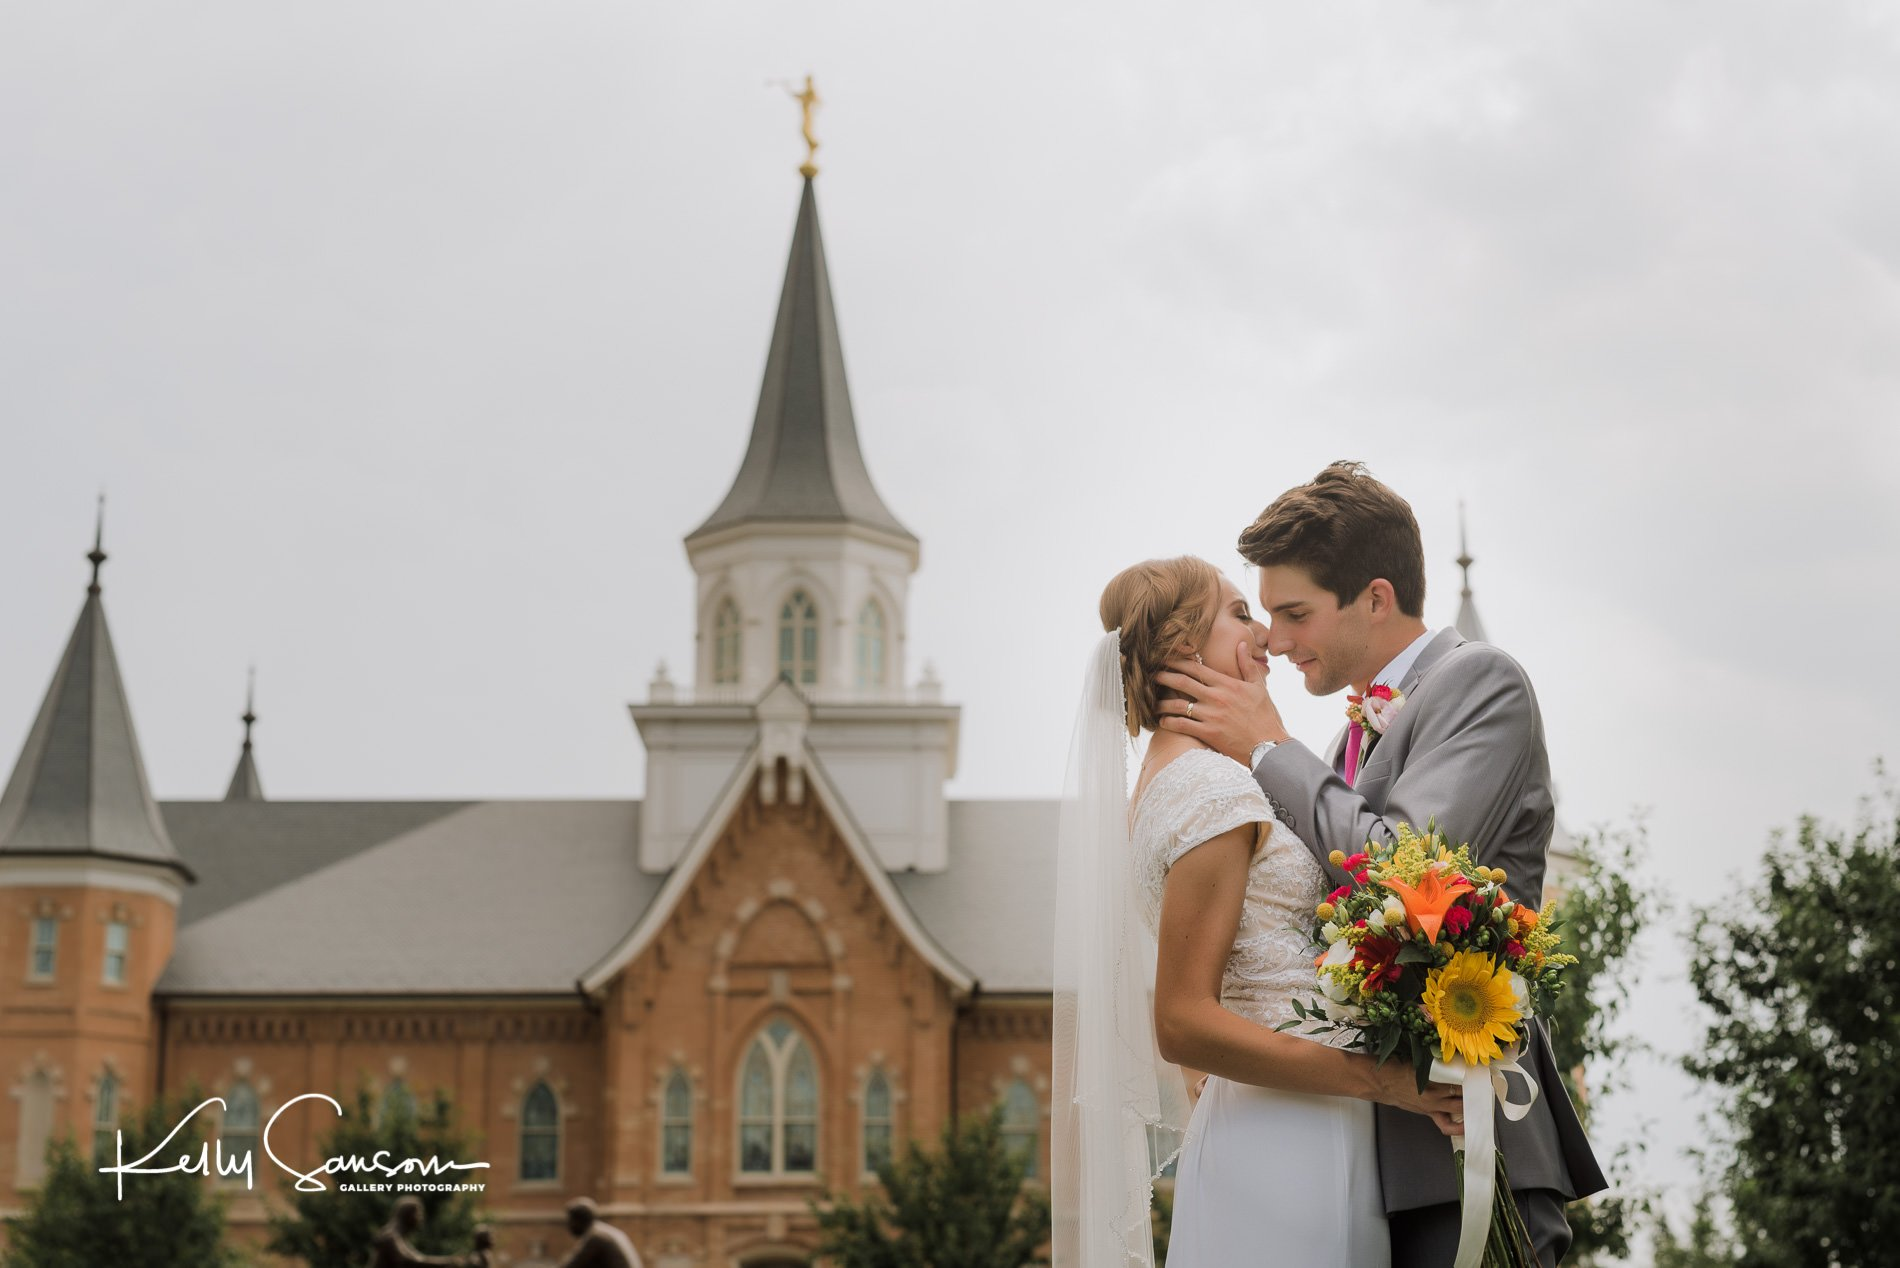 Groom going in for a kiss with his bride for wedding photography at the provo city center lds temple.